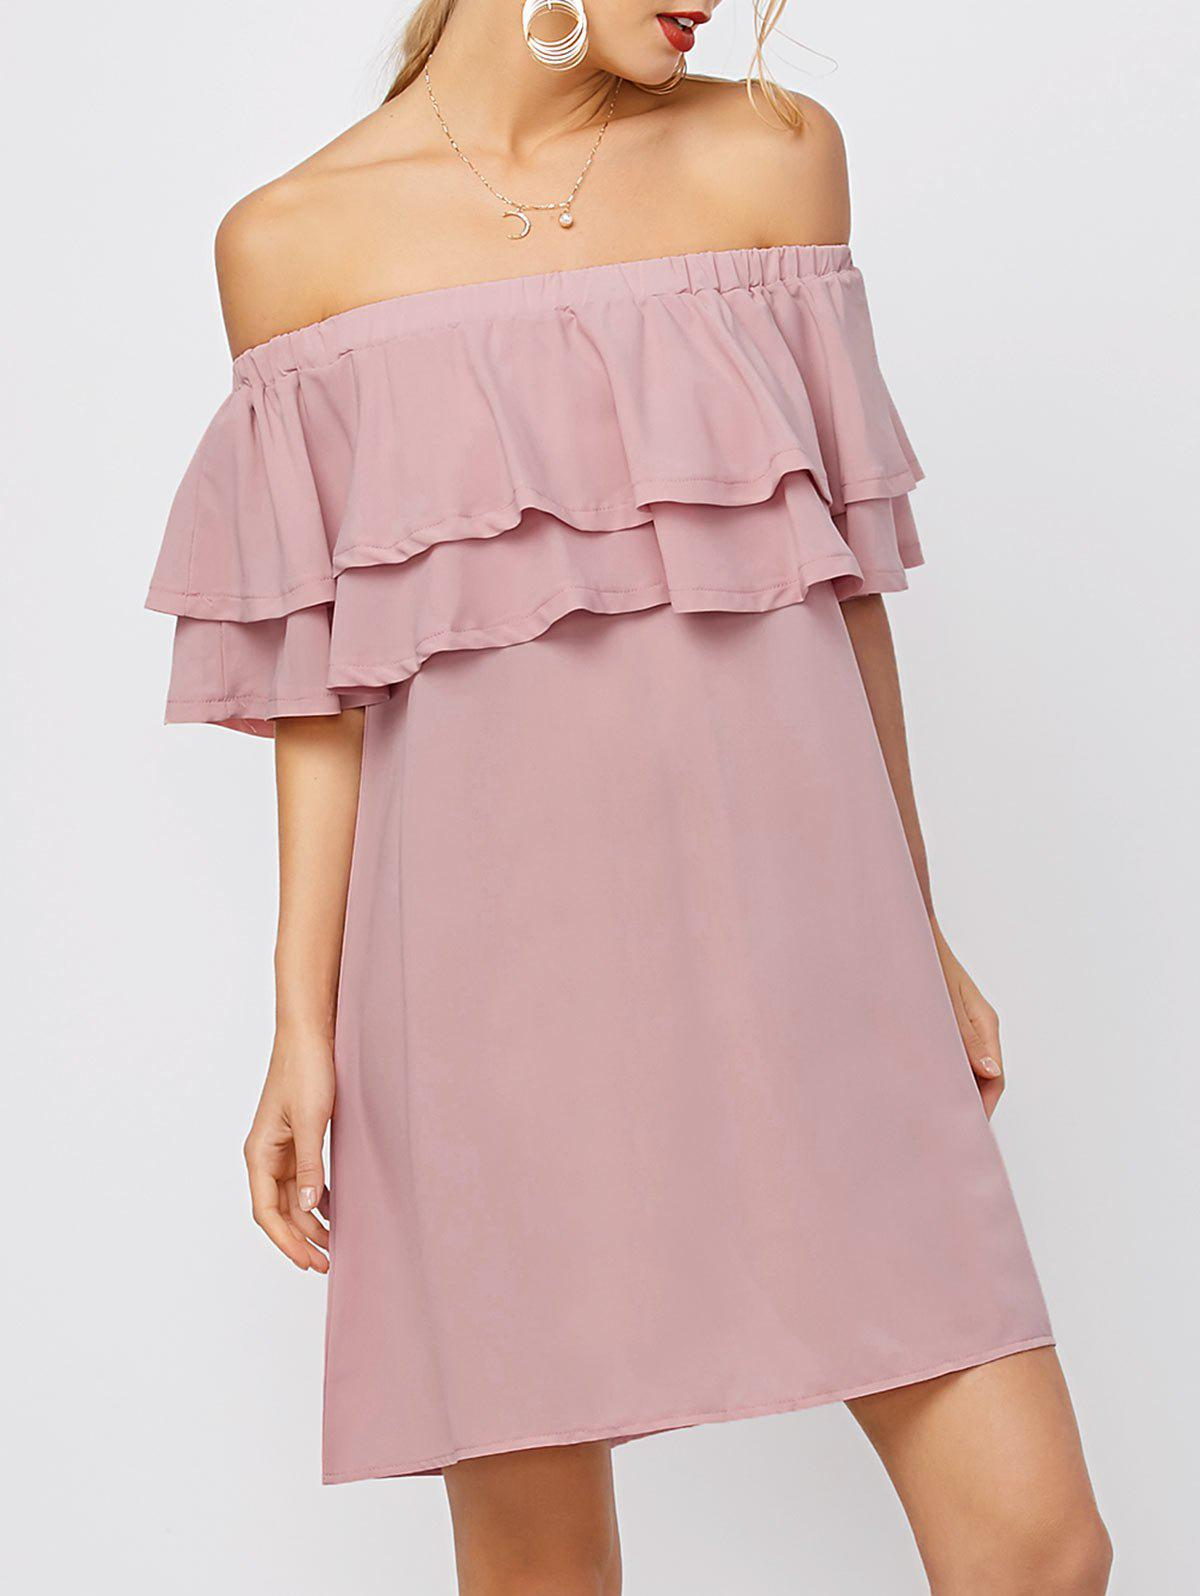 Fancy Flounce Off Shoulder Chiffon Pastel Casual Short Dress with Sleeves